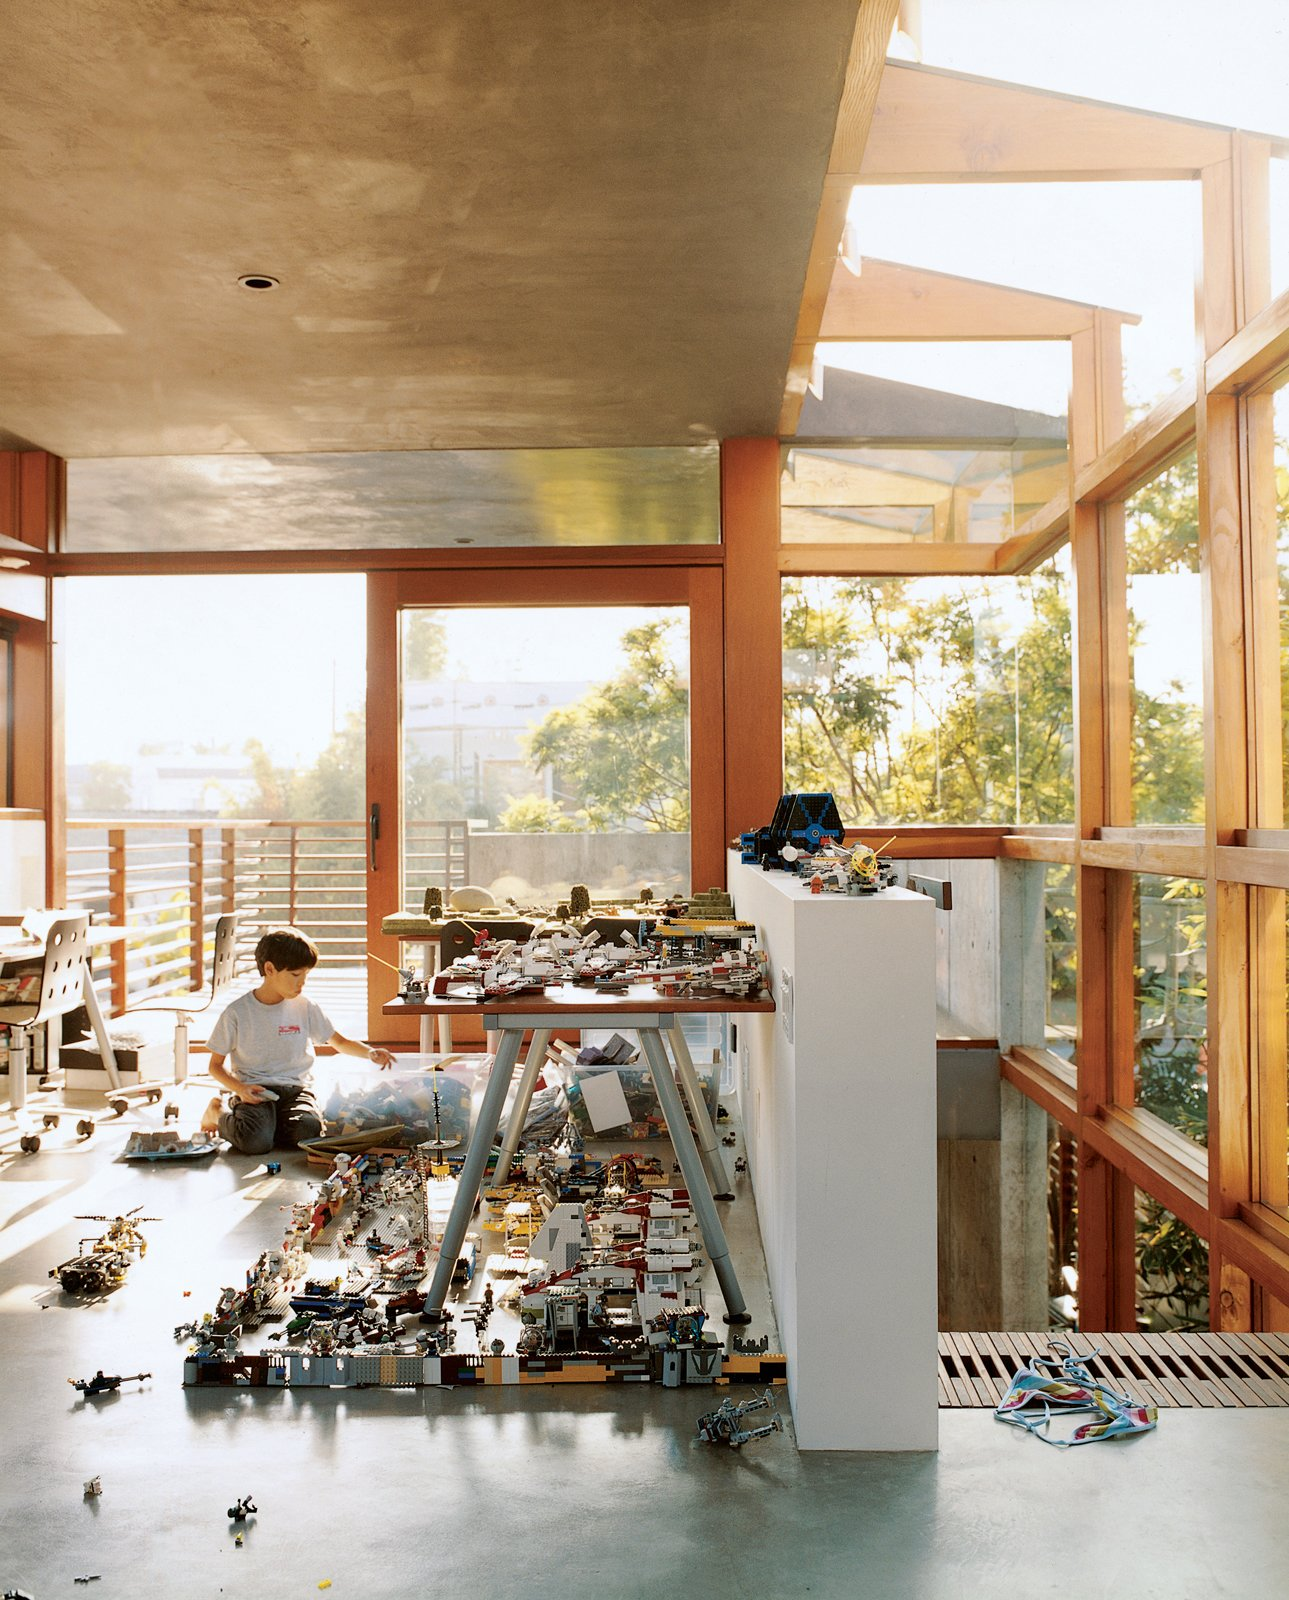 In the new addition to the Hertz/Fong residence, the architect's son Max tinkers with his extensive array of Legos and War Hammer miniatures in the upstairs office/playroom. Sustainability in Stages - Photo 1 of 6